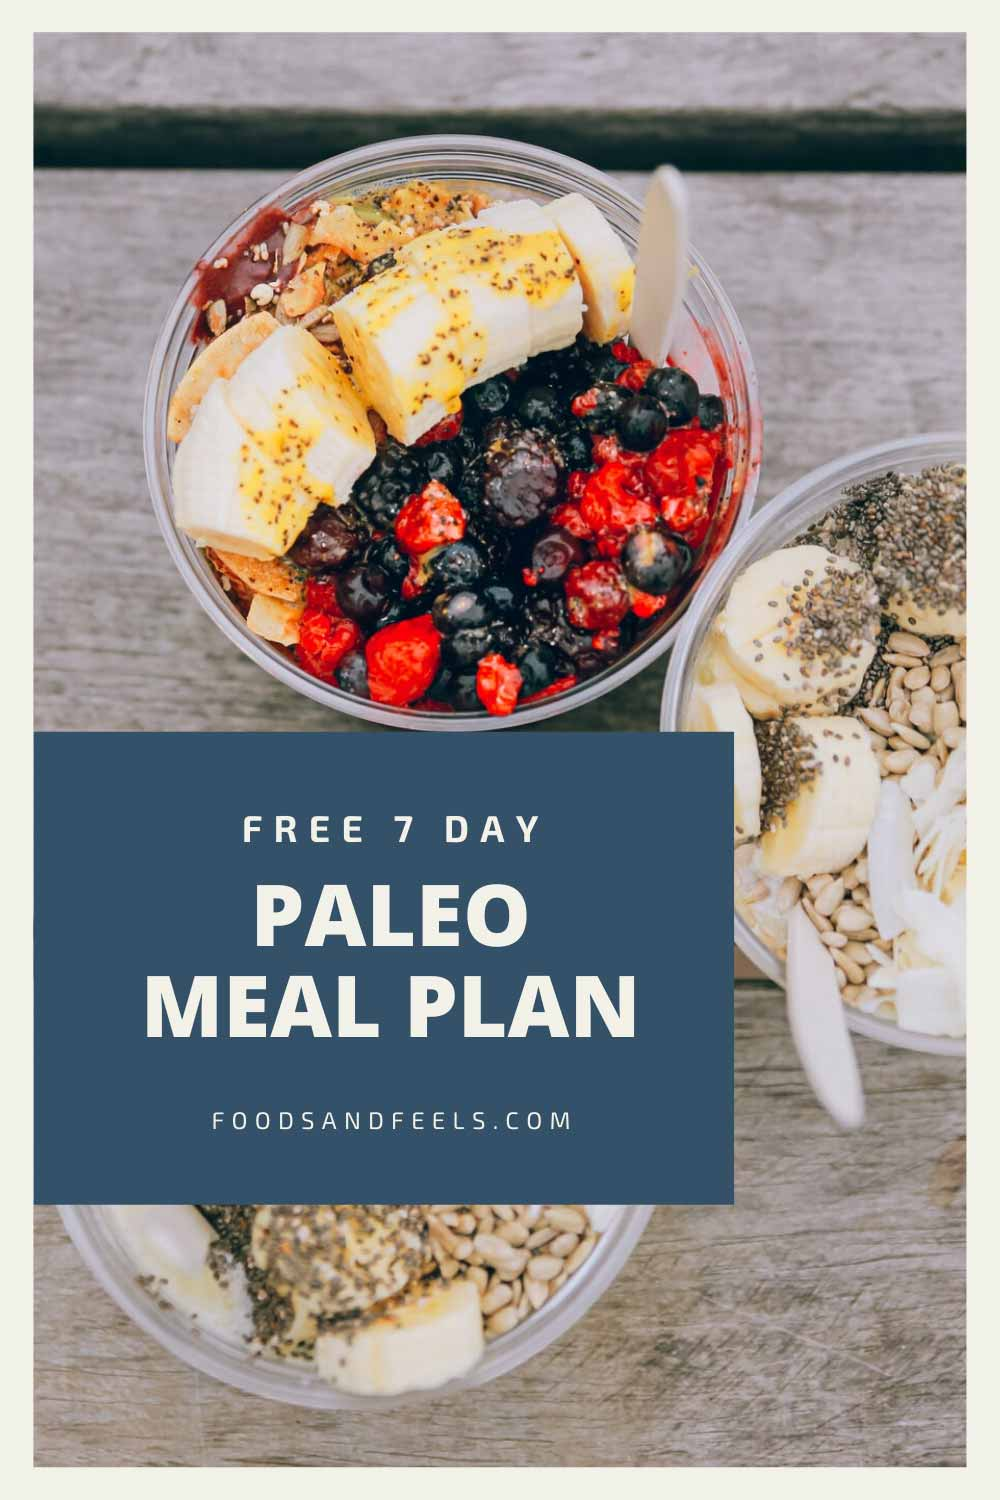 Free 7 day paleo meal plan